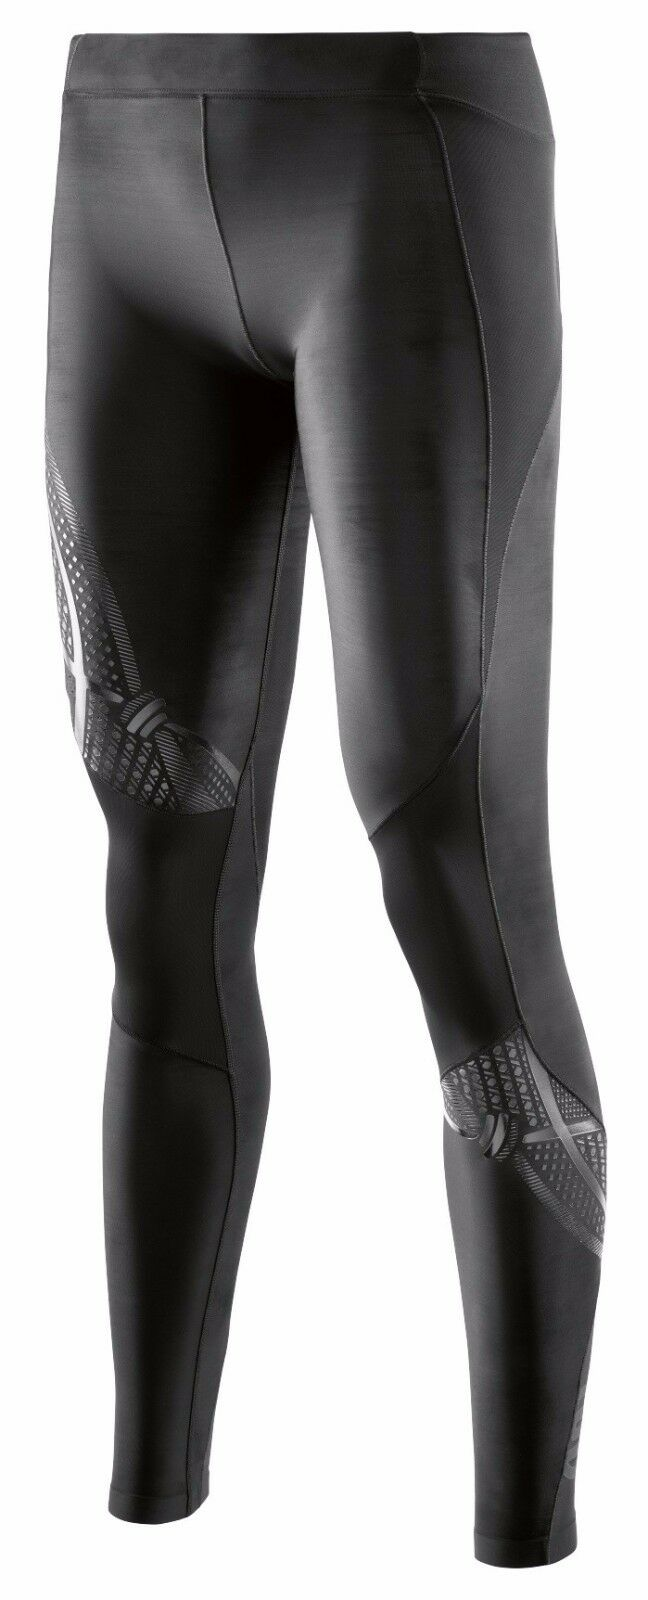 NEW  Skins Compression A400 Womens Long Tights (Nexus) + FREE AUS DELIVERY